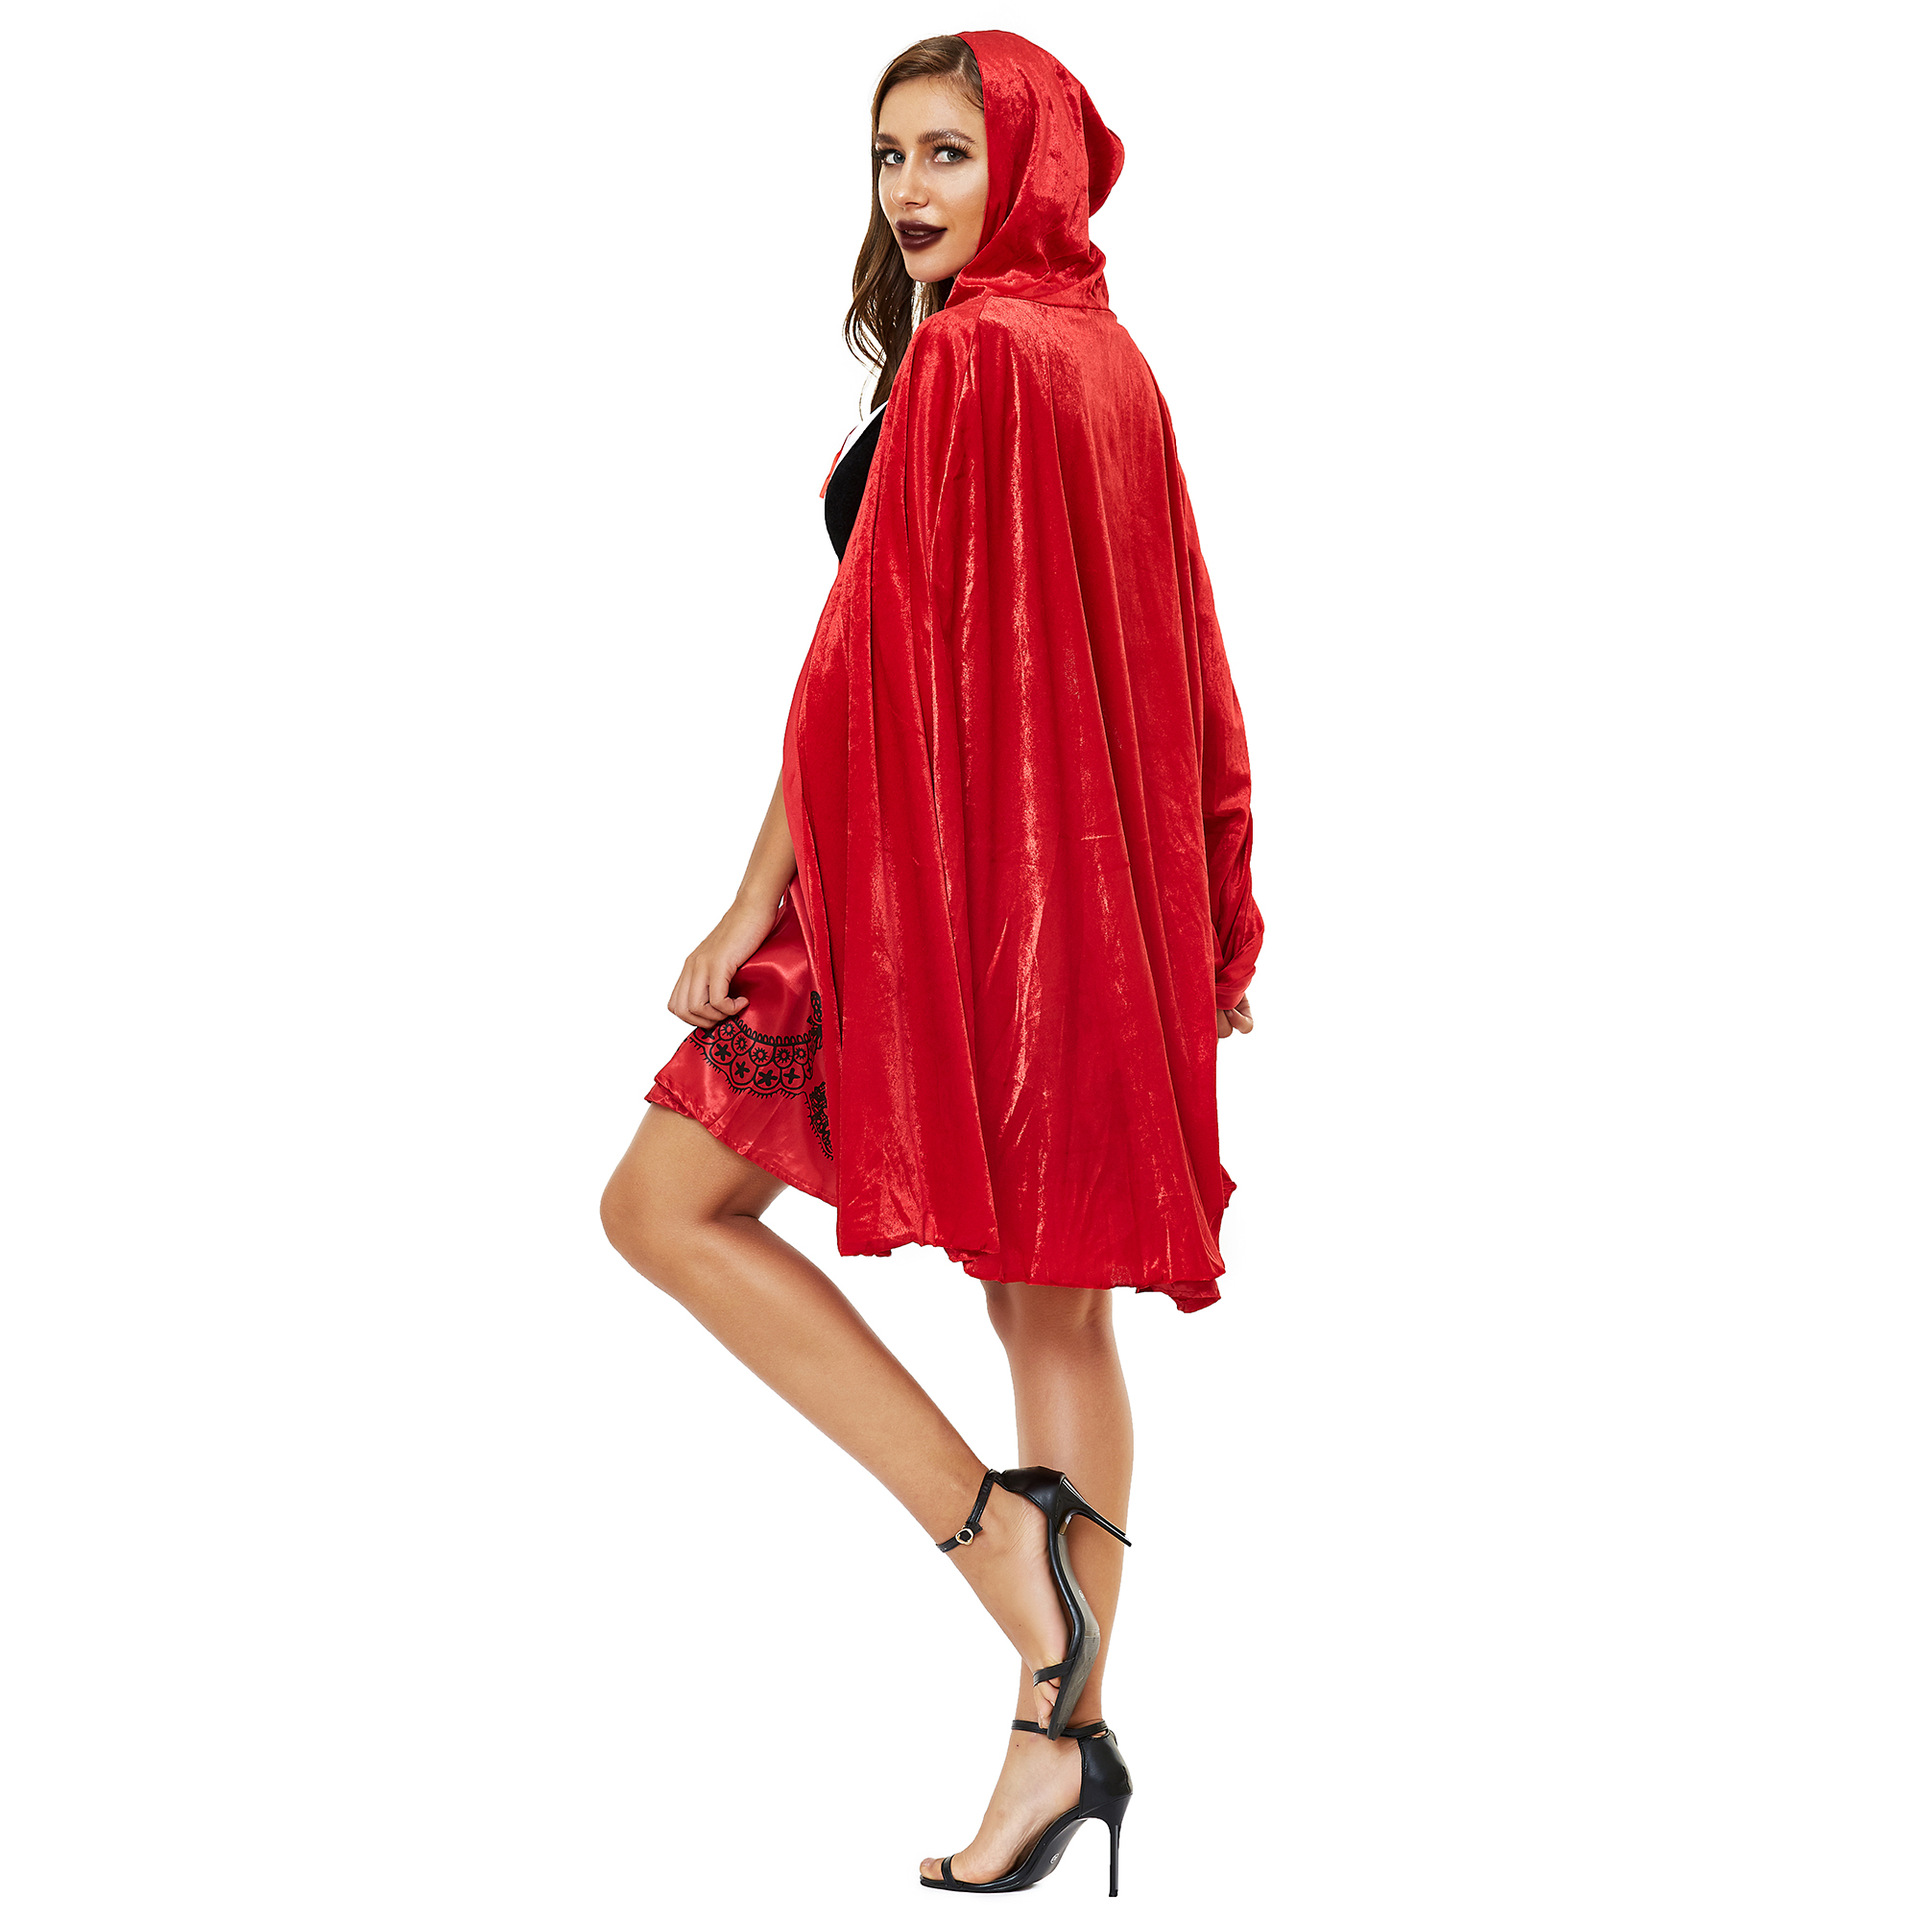 Women's Halloween Cape Little Red Riding Hood Cosplay role uniform thickened s-3xl plus 3